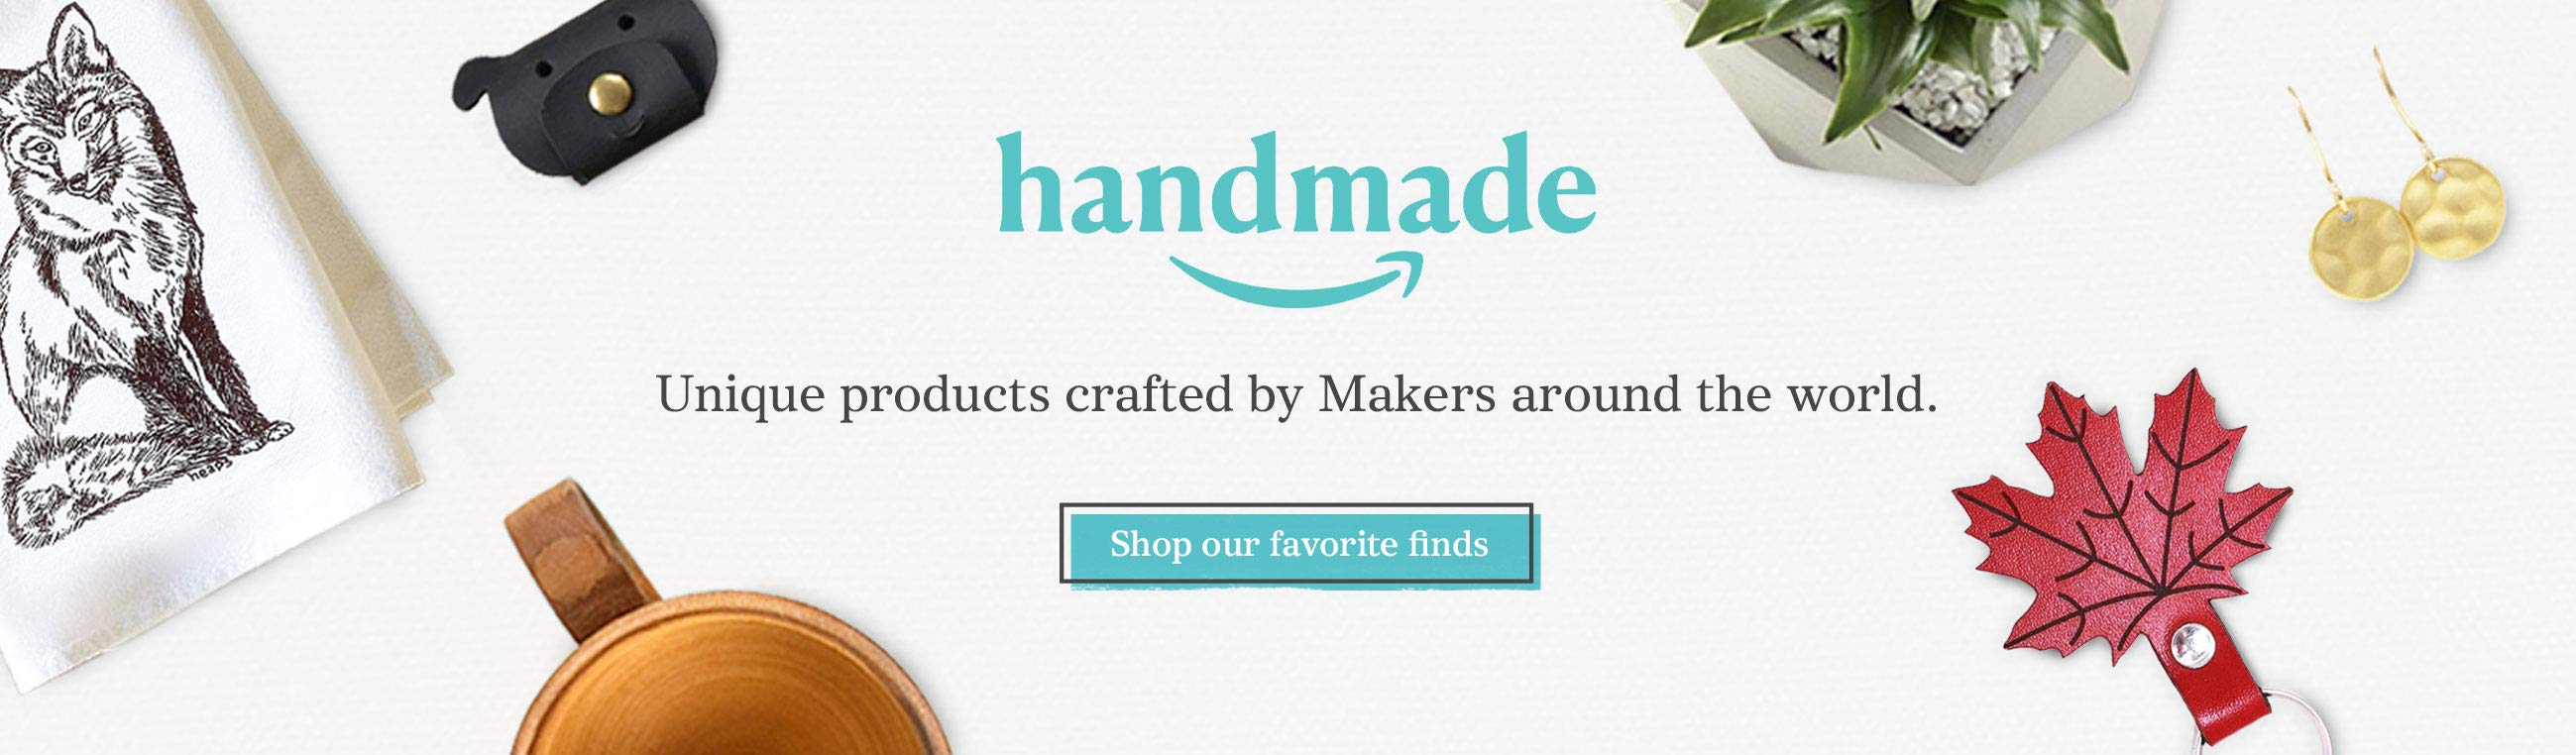 Handmade, unique products crafted by Makers around the world. Shop our favorite finds.